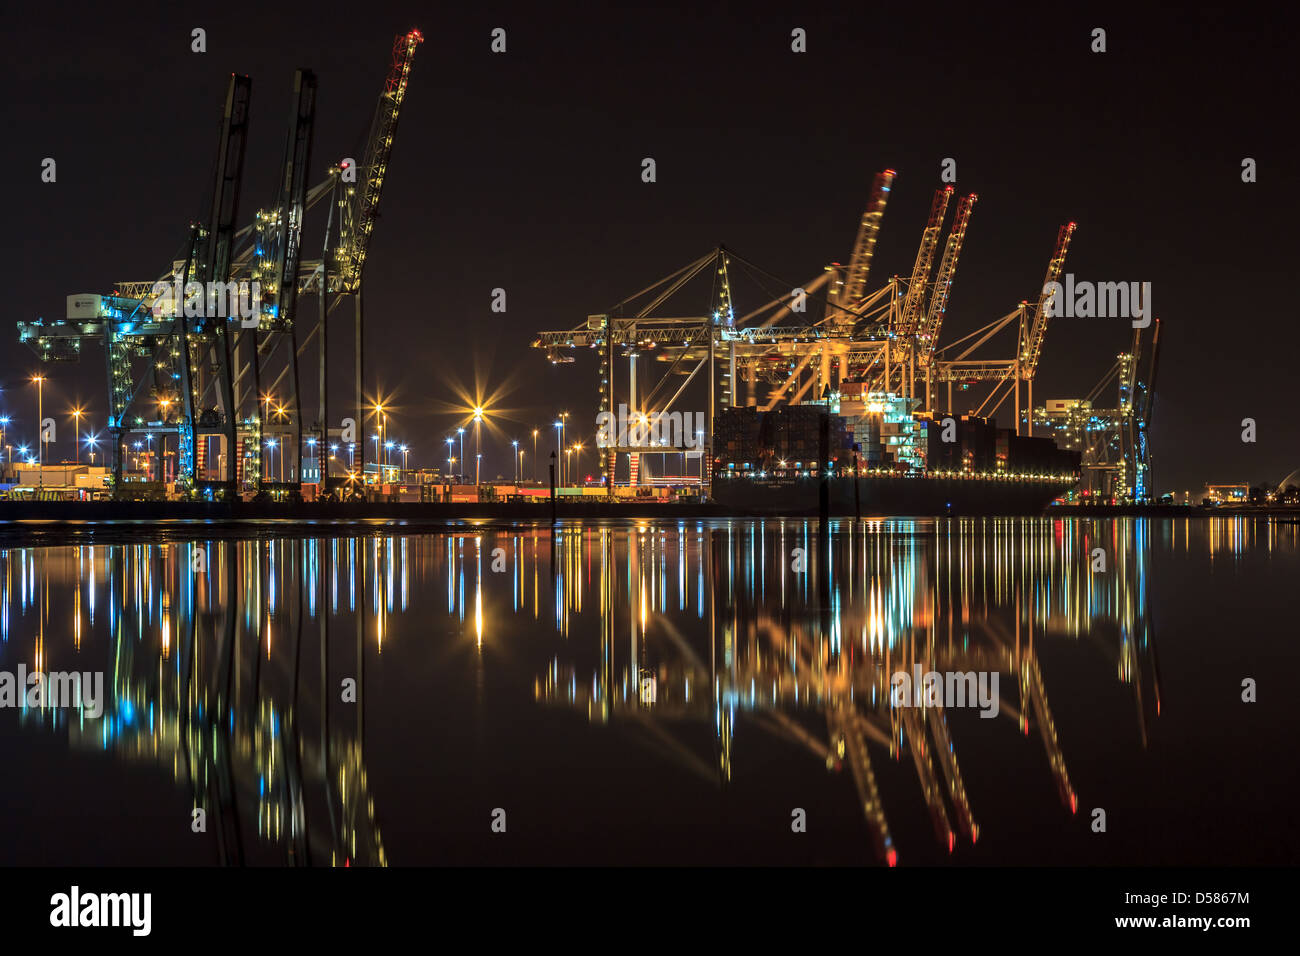 Southampton docks at night with the container ship, Frankfurt Express, being loaded. - Stock Image